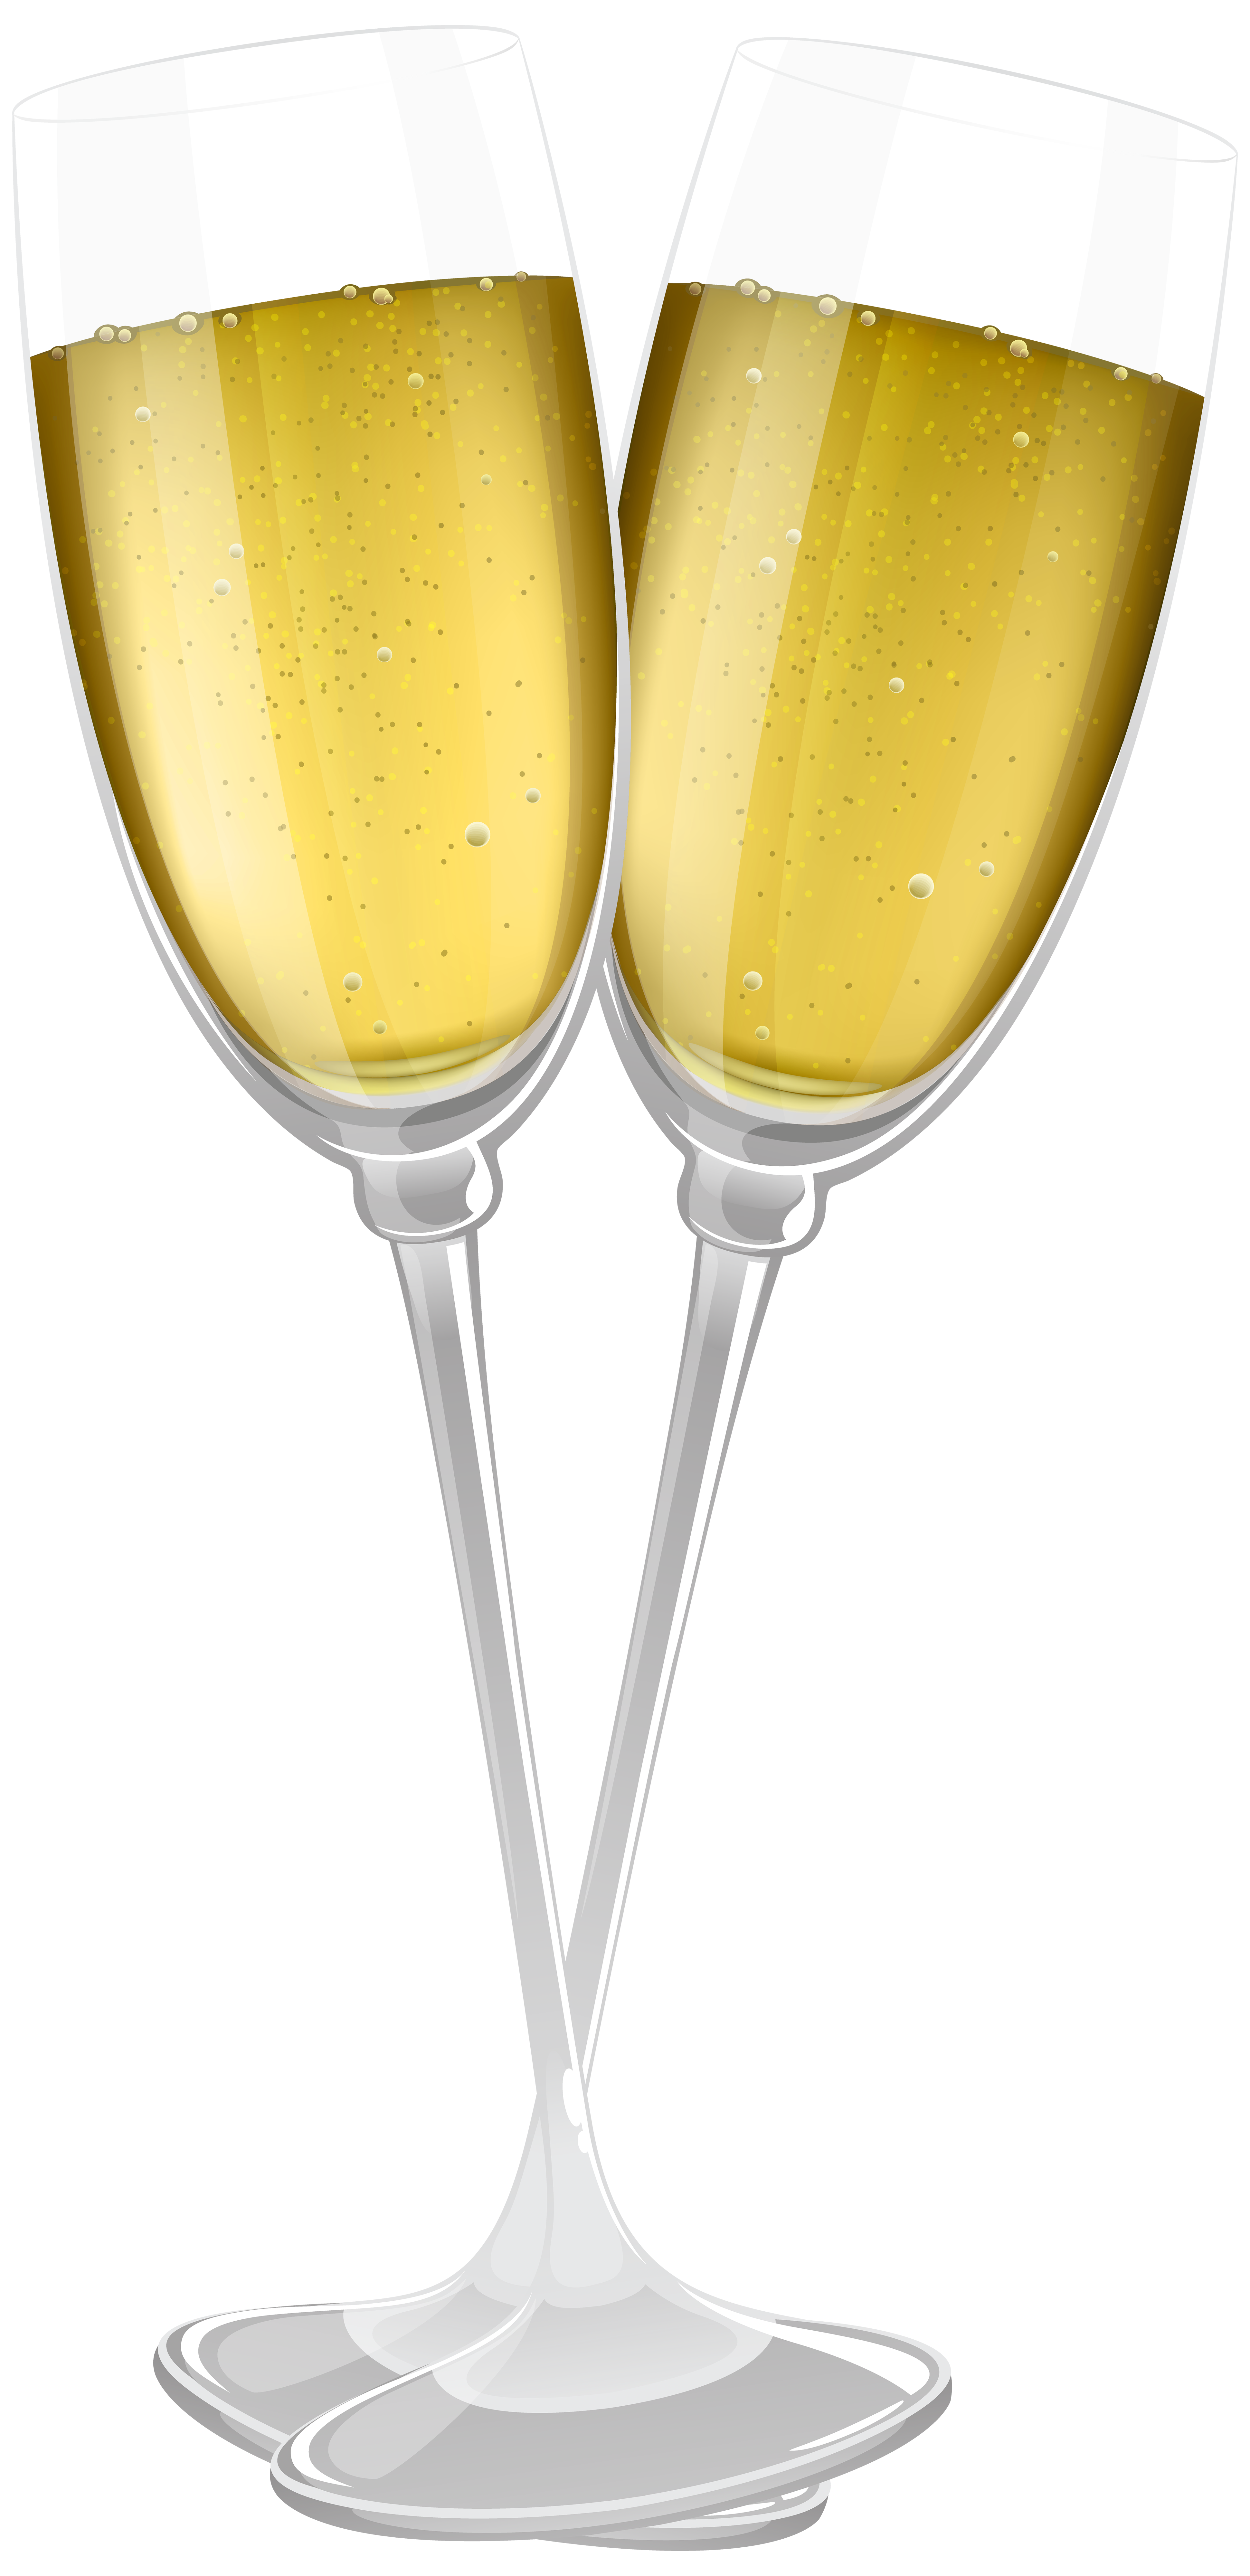 Glasses of champagne transparent. Cocktails clipart two